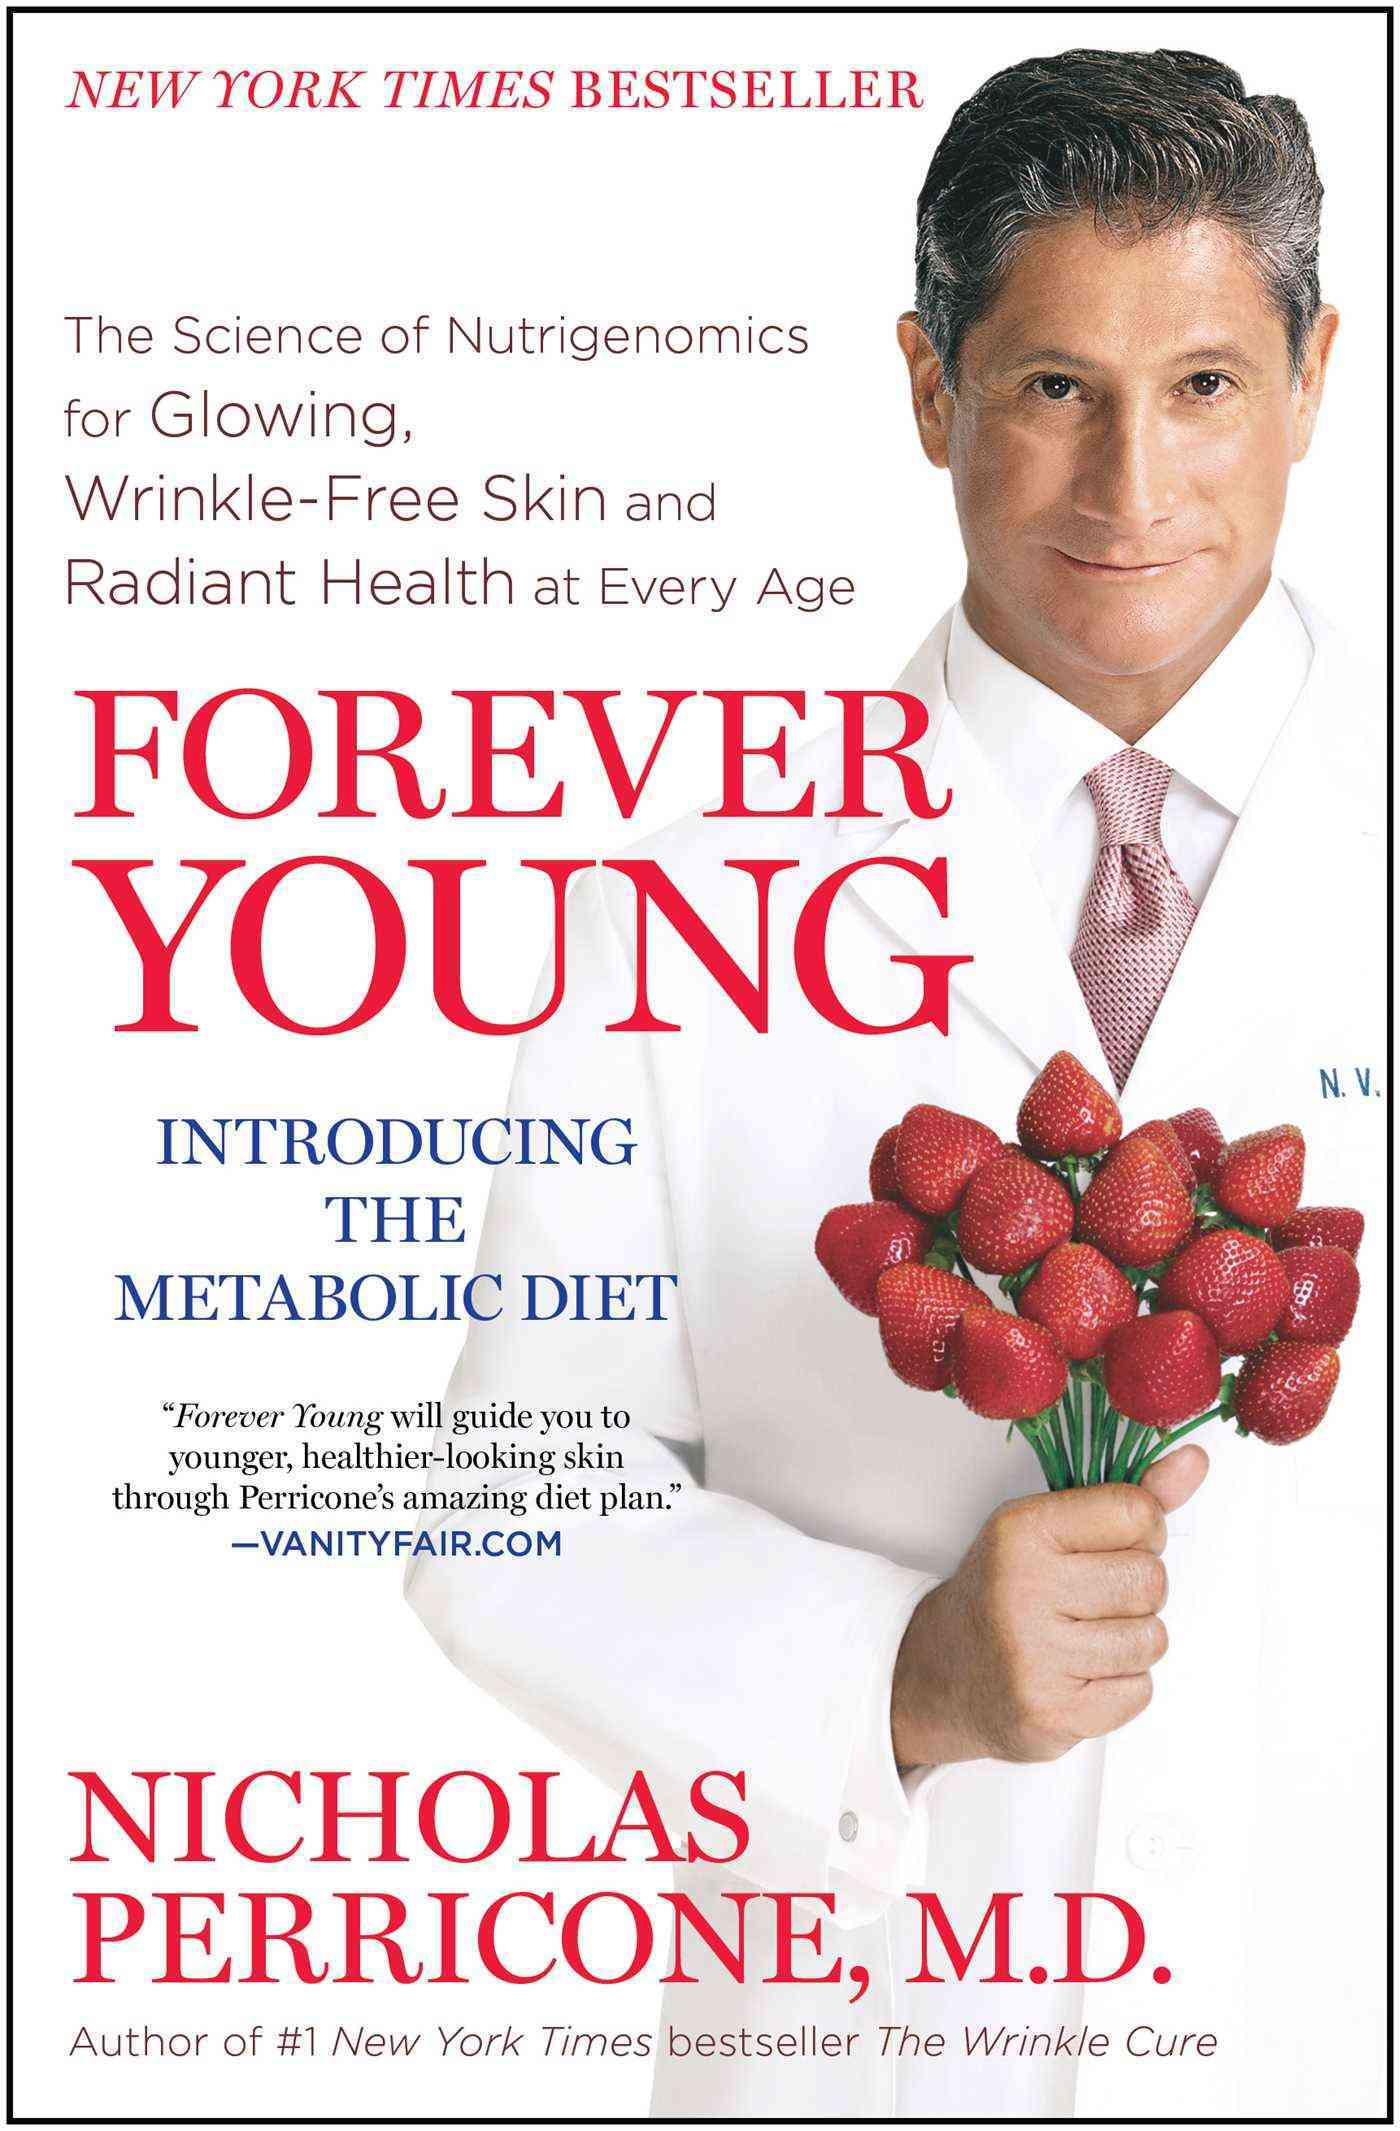 Forever Young: The Science of Nutrigenomics for Glowing, Wrinkle-Free Skin and Radiant Health at Every Age (Paperback)